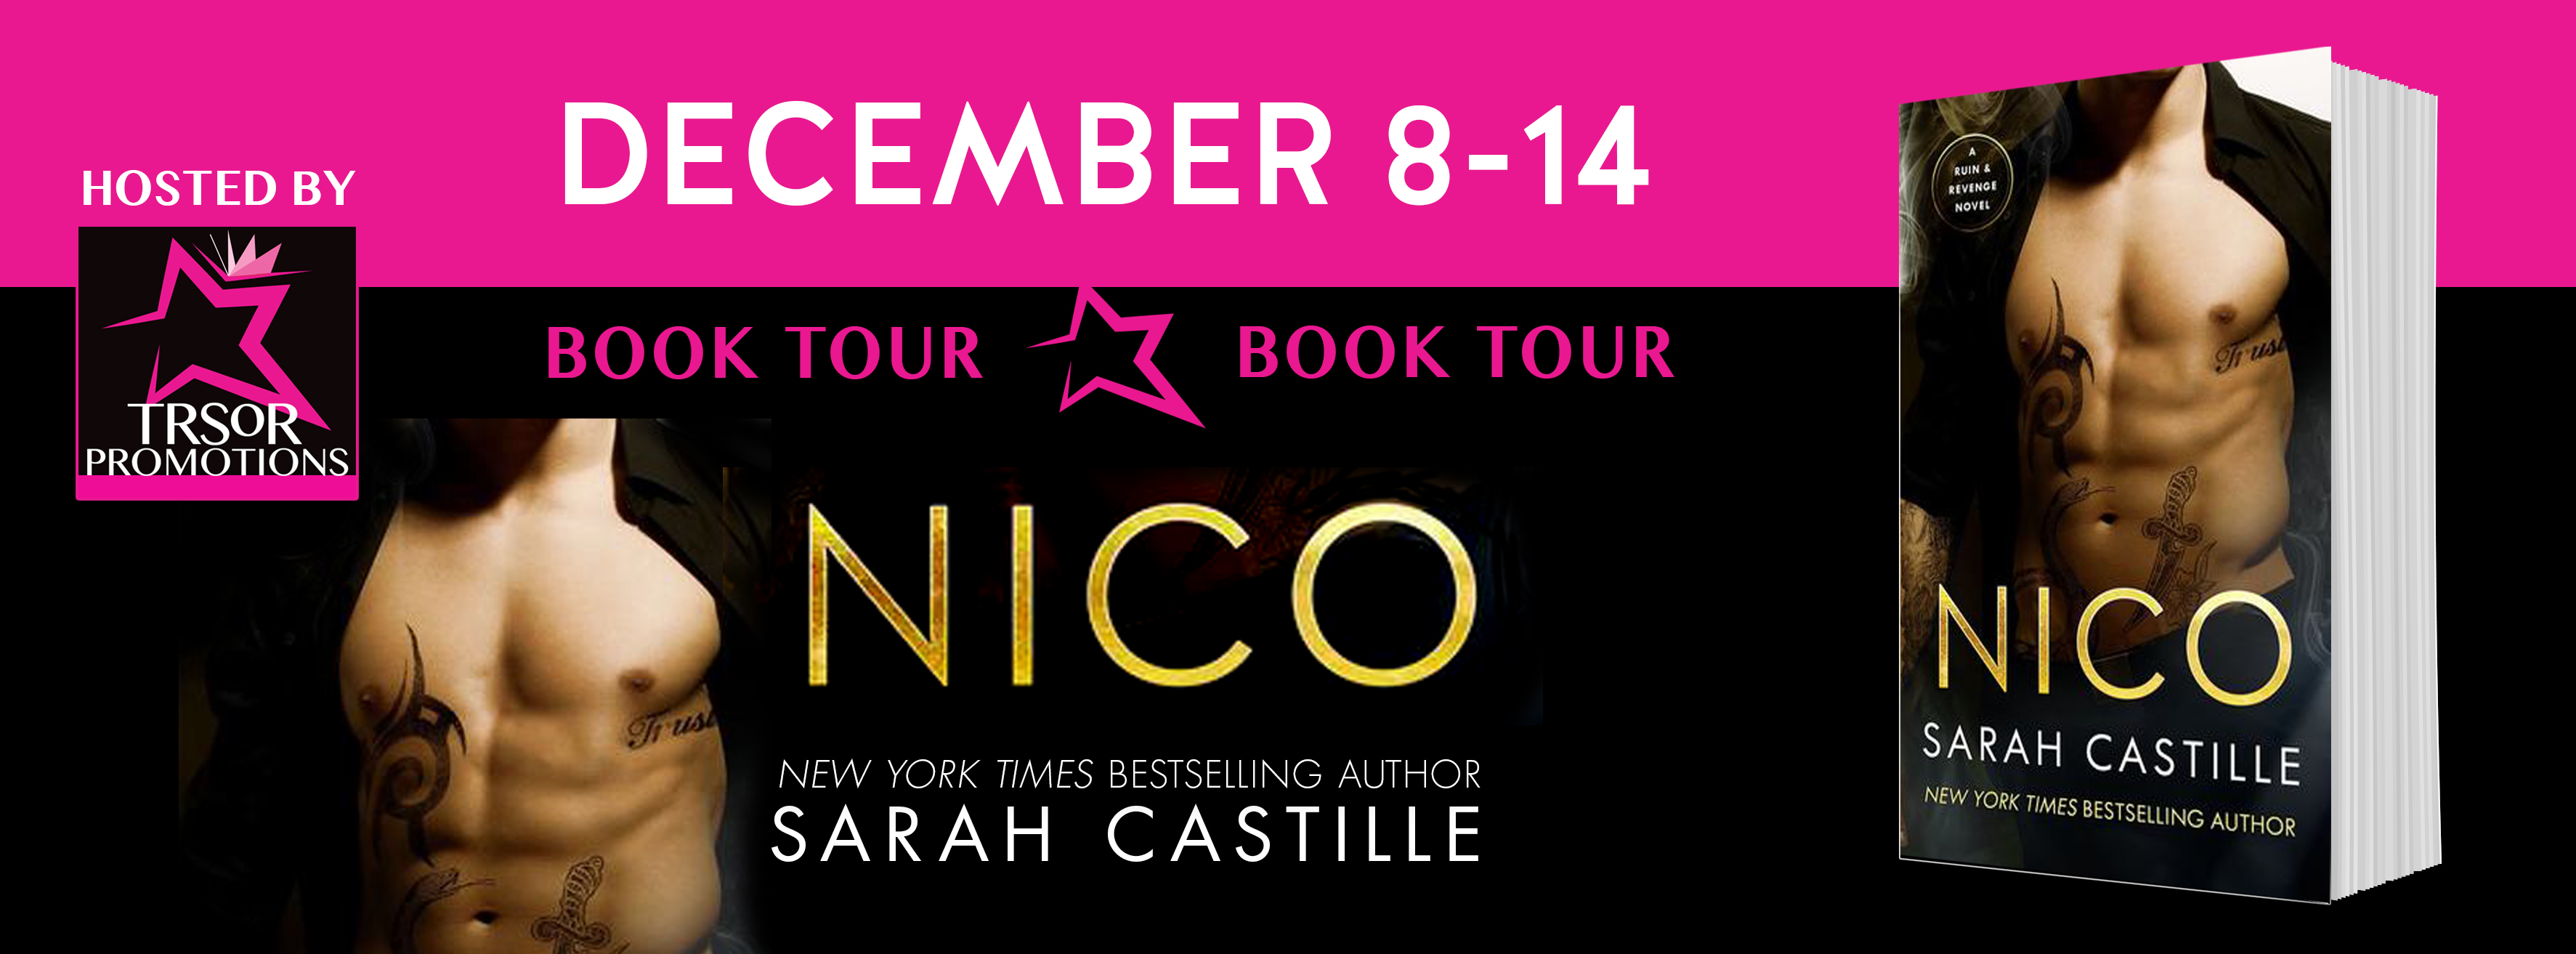 nico_book_tour